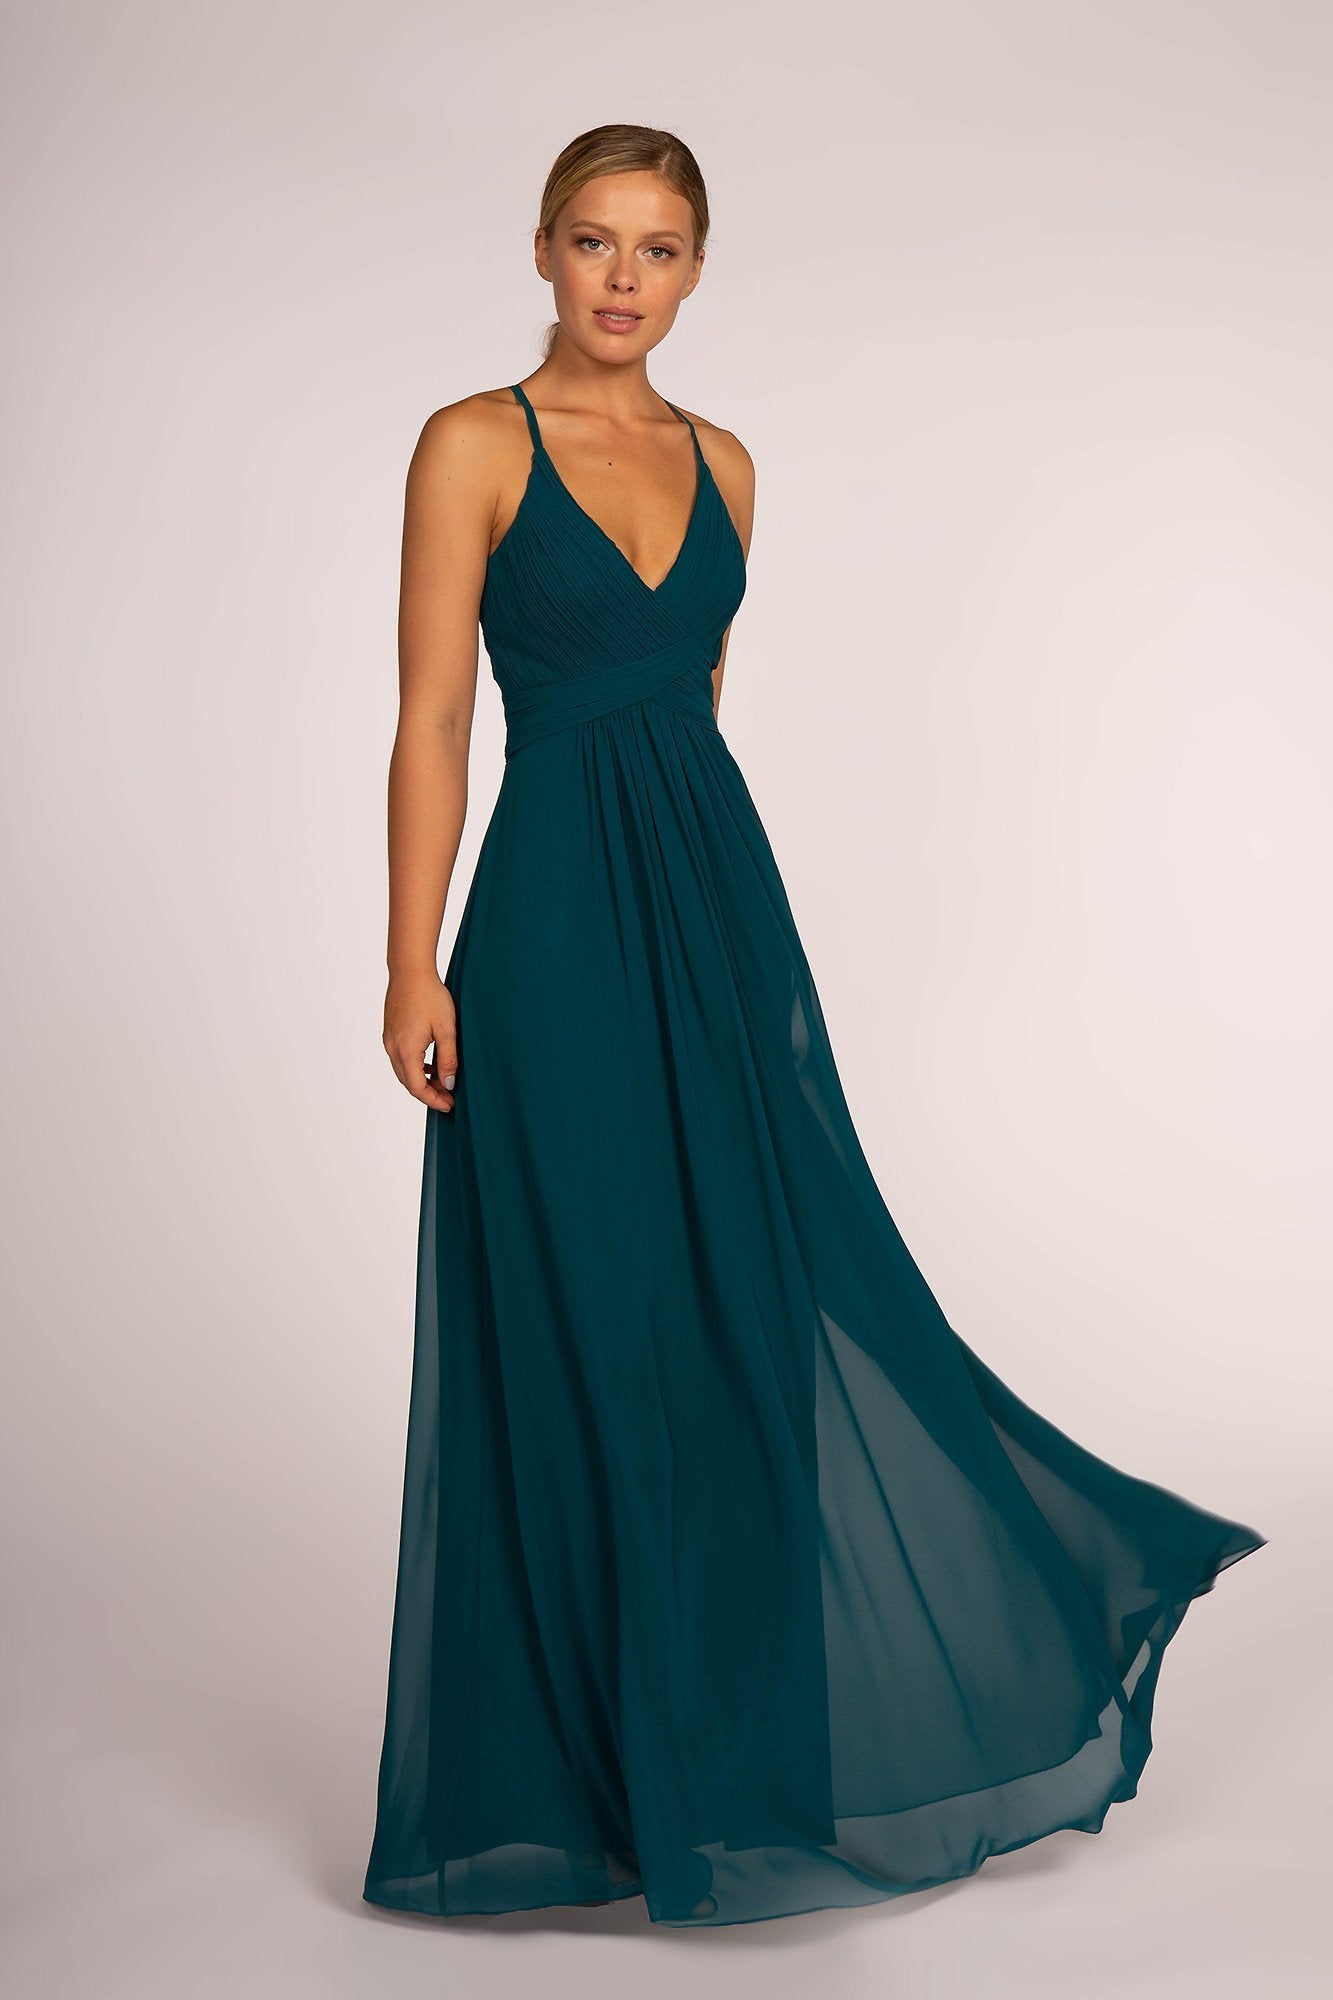 Elizabeth K - Plunging Crisscross Pleated Bodice A-Line Gown GL2609 In Green